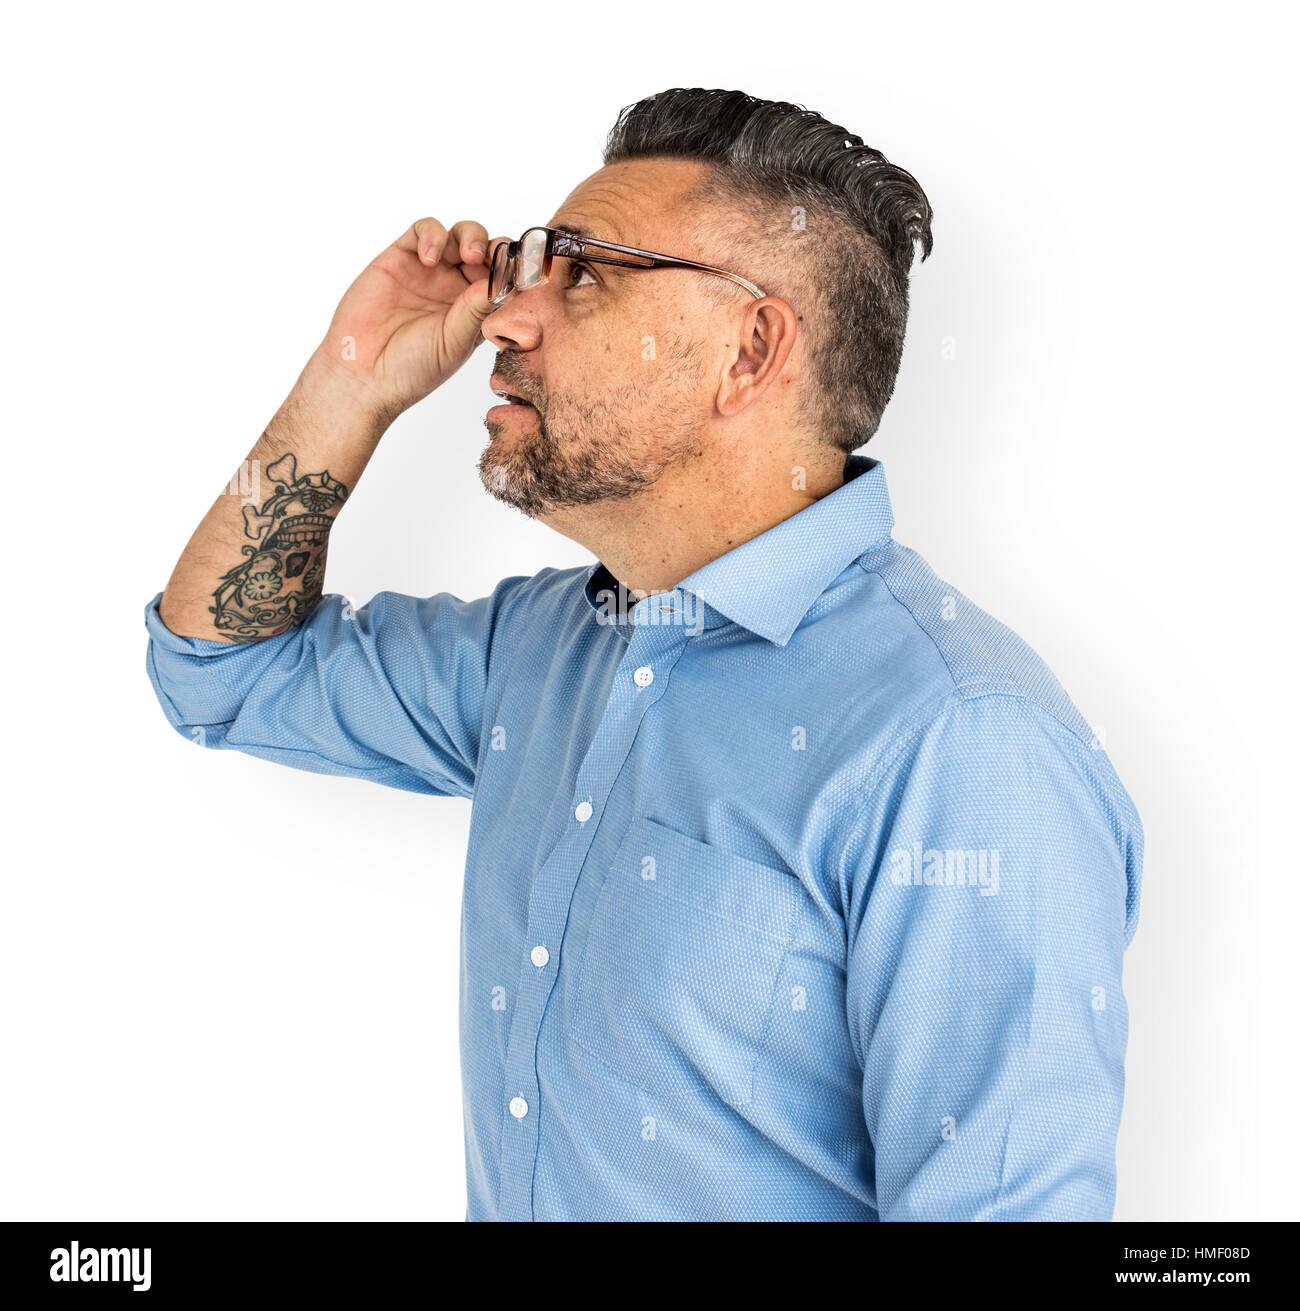 Mature Man Amazed Looking Glasses Concept - Stock Image